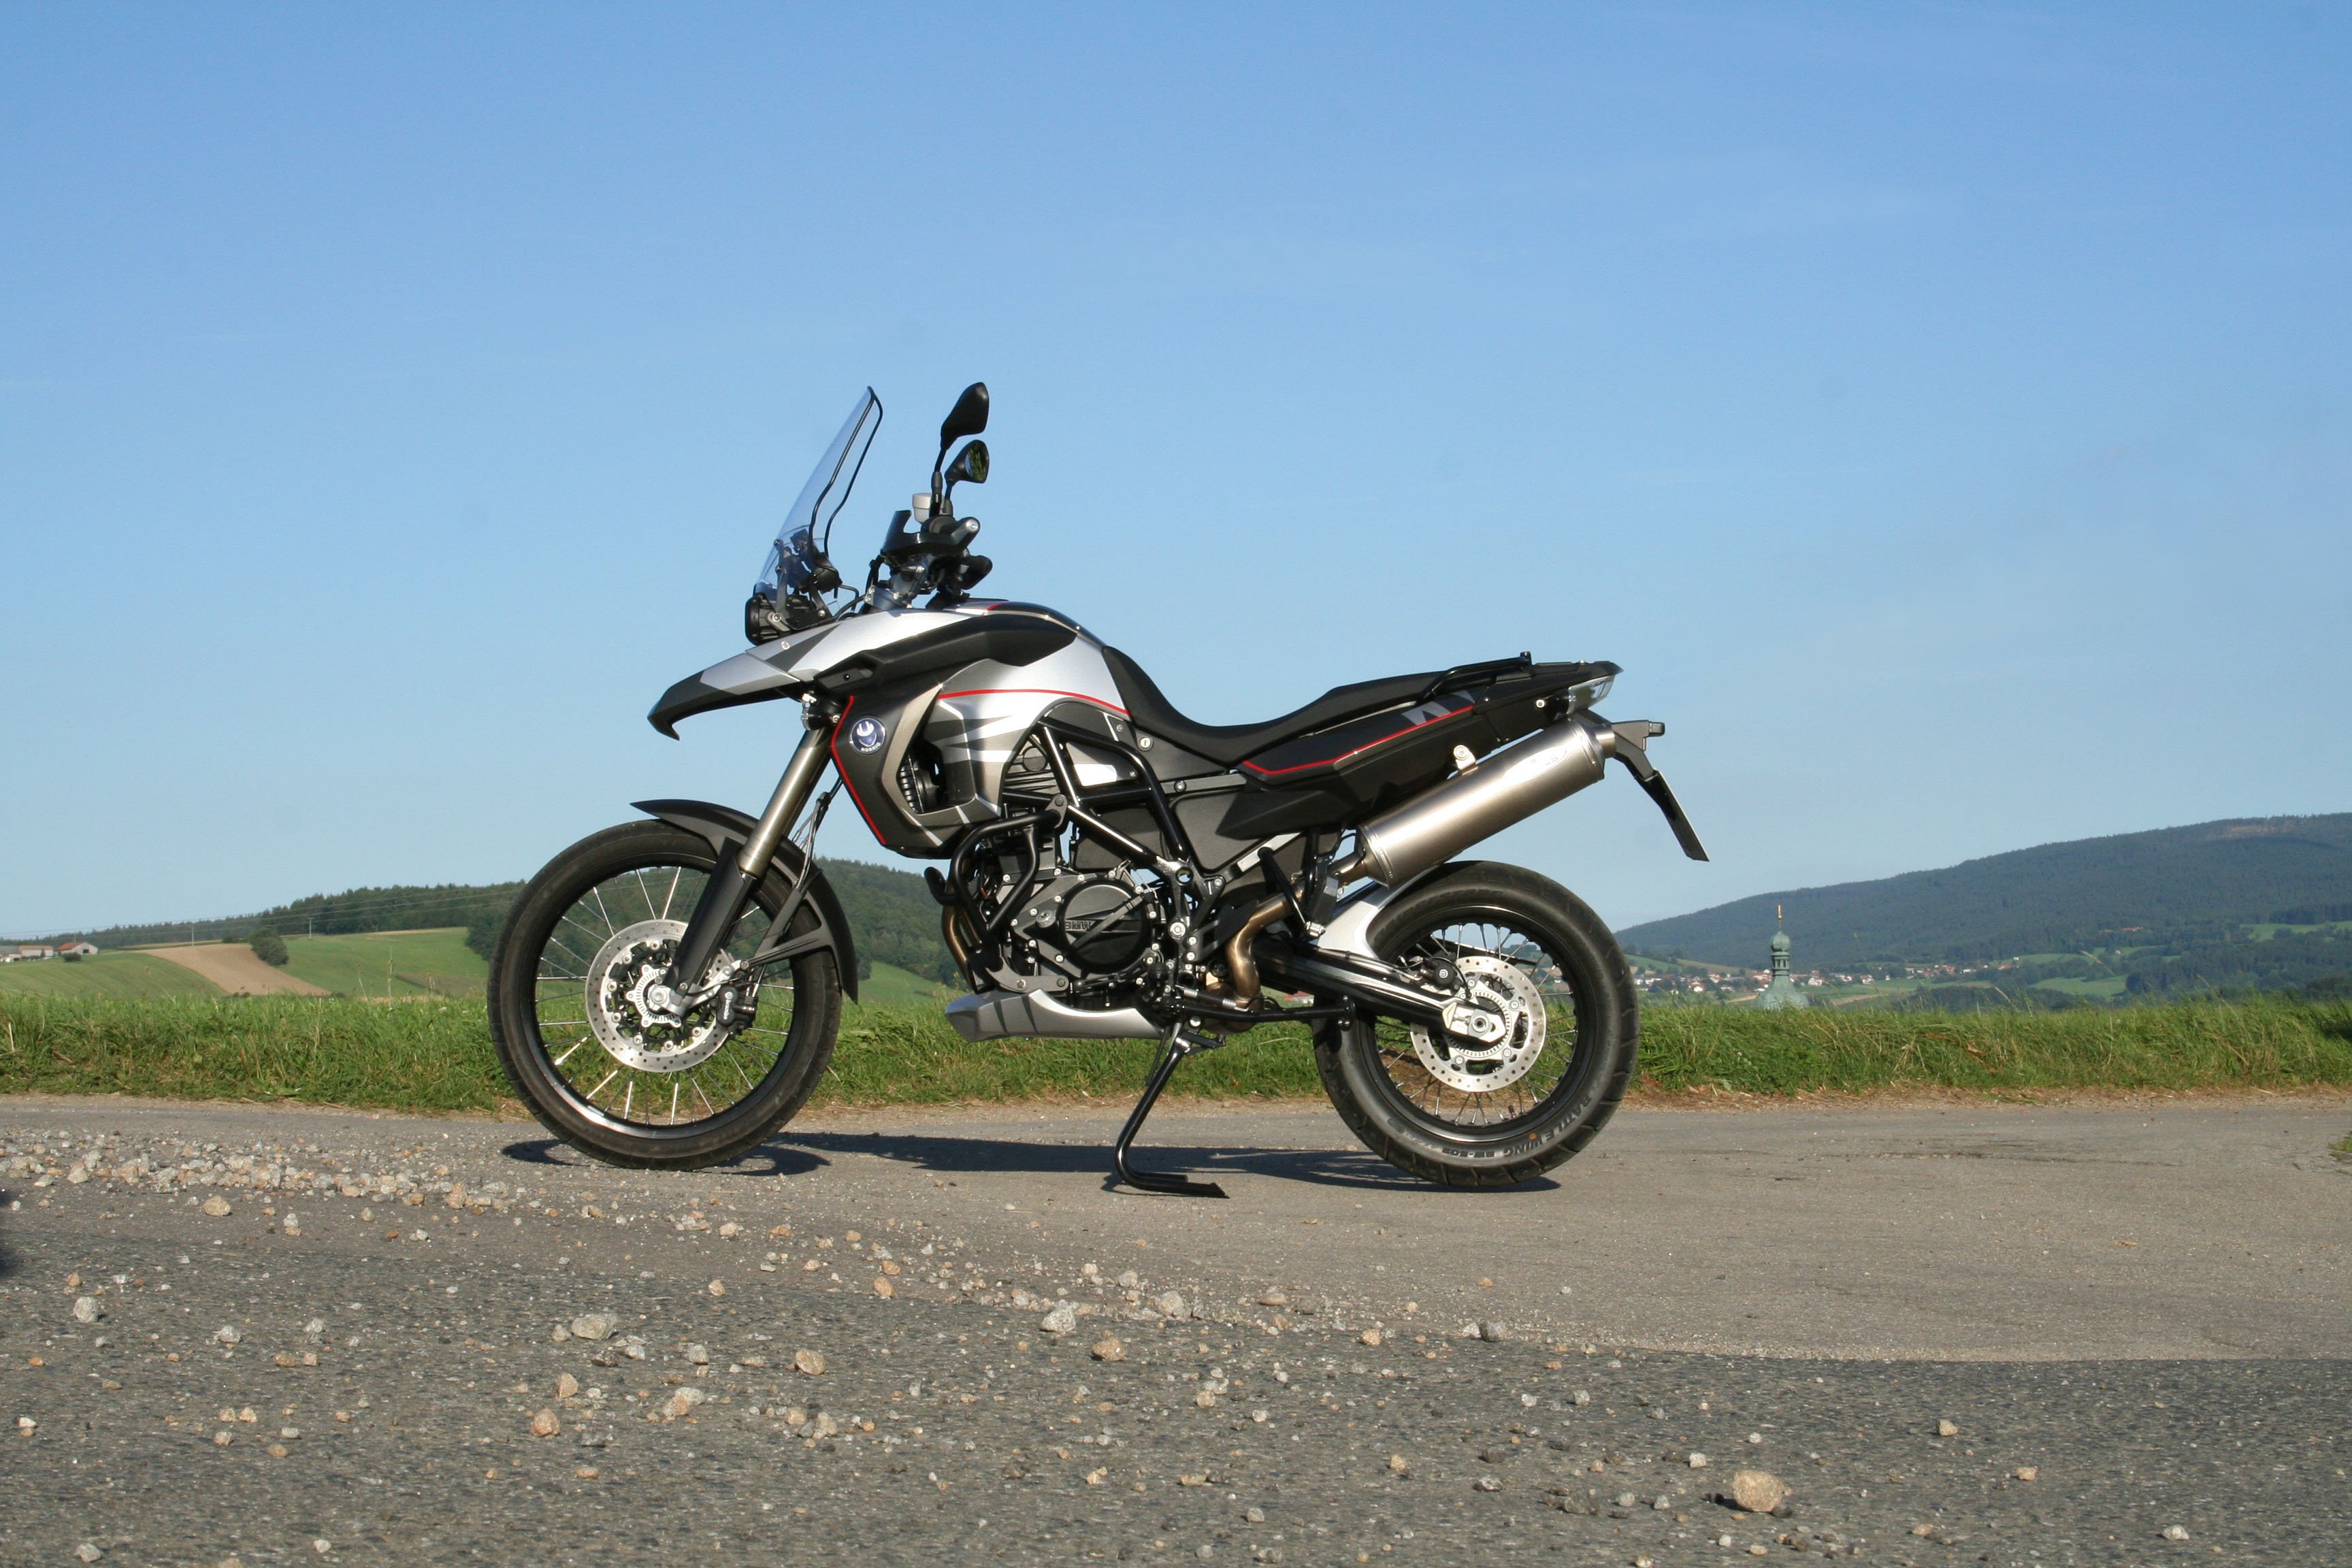 bmw f800gs umbau bmw f800gs off road oder touren. Black Bedroom Furniture Sets. Home Design Ideas